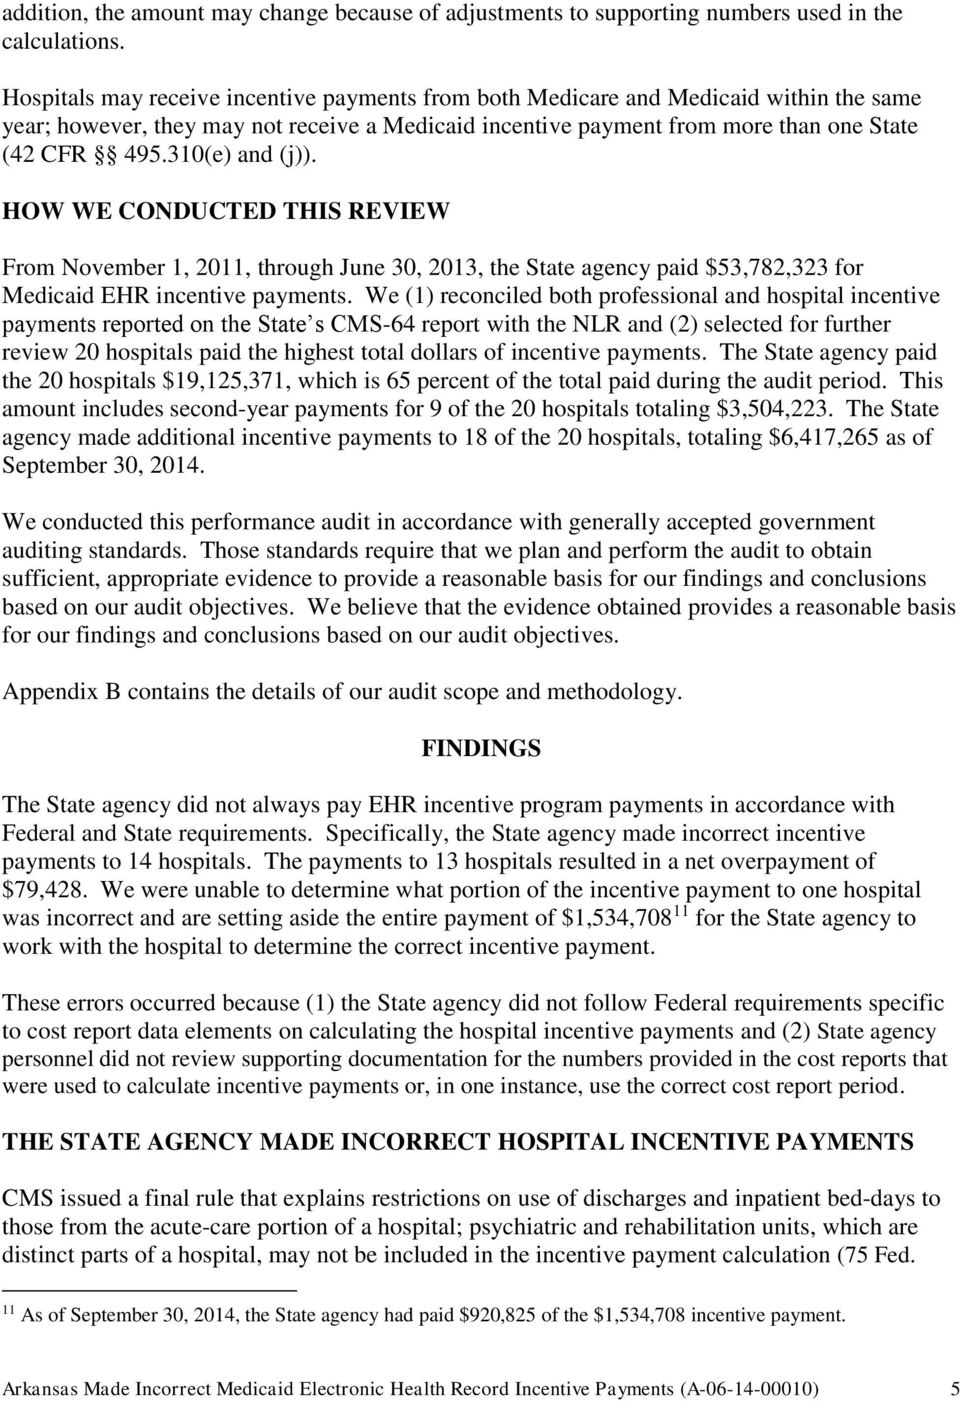 310(e) and (j)). HOW WE CONDUCTED THIS REVIEW From November 1, 2011, through June 30, 2013, the State agency paid $53,782,323 for Medicaid EHR incentive payments.